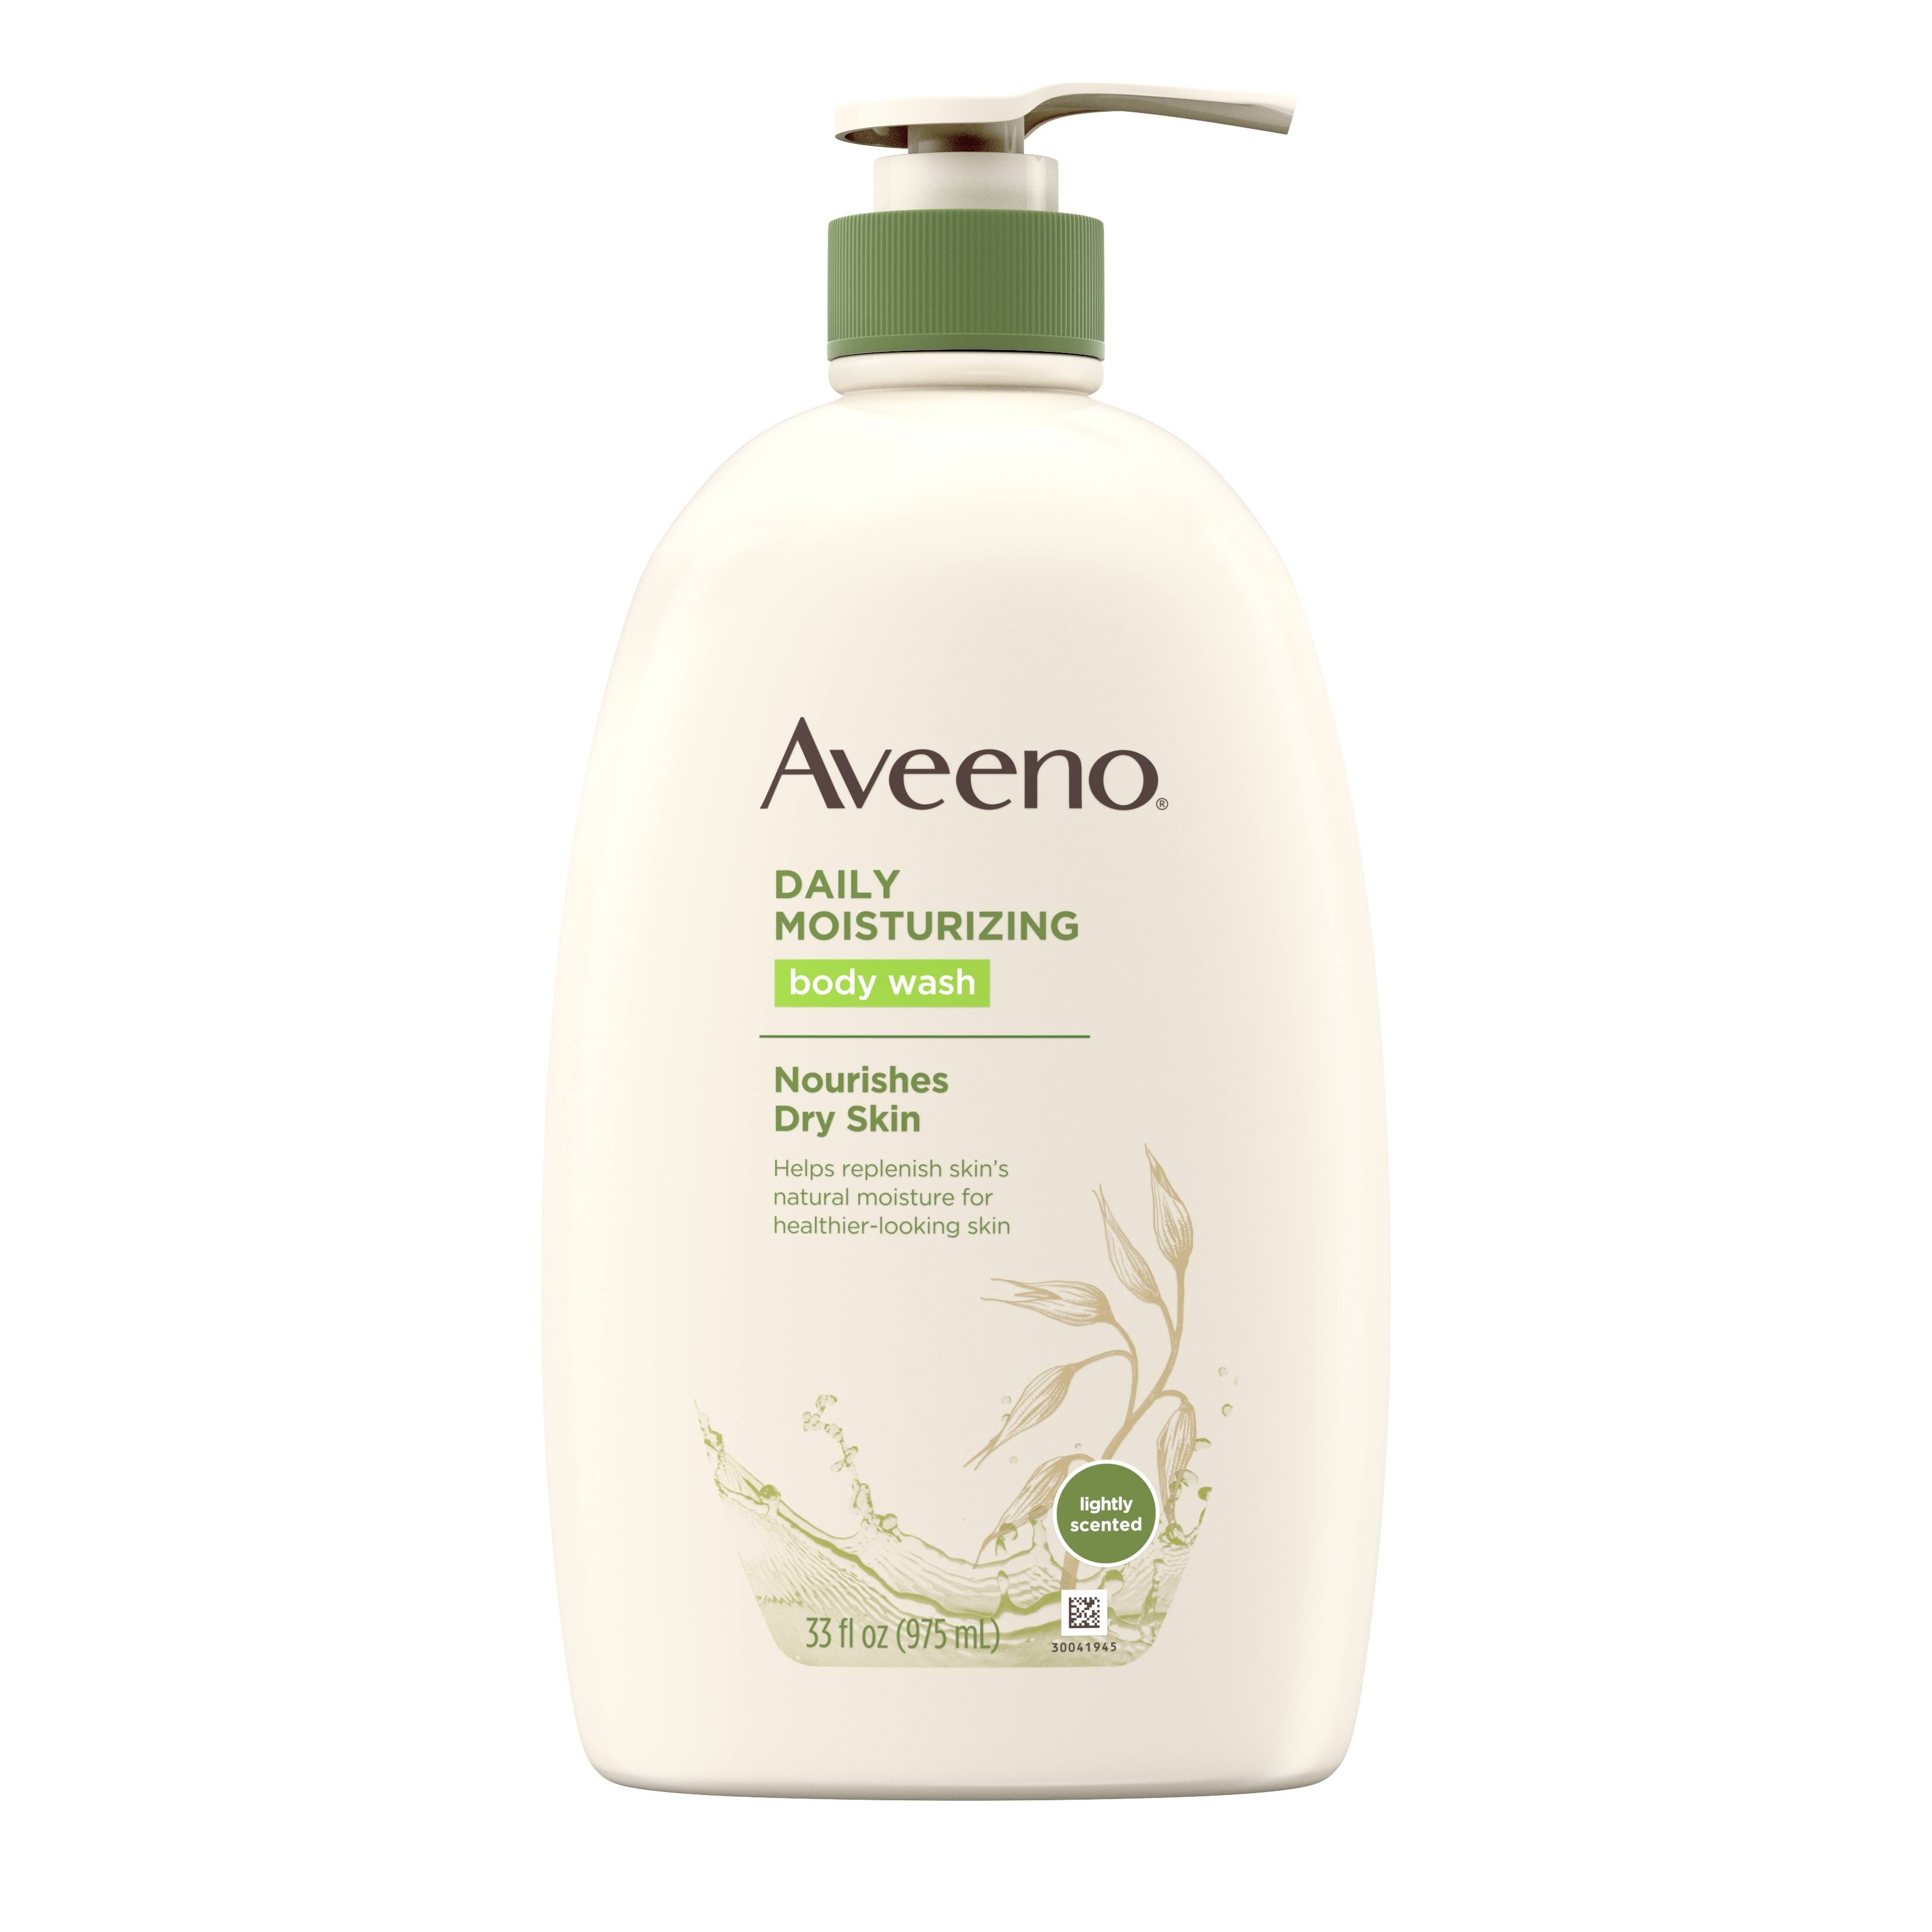 Aveeno Active Naturals Daily Moisturizing Body Wash - 33.8oz